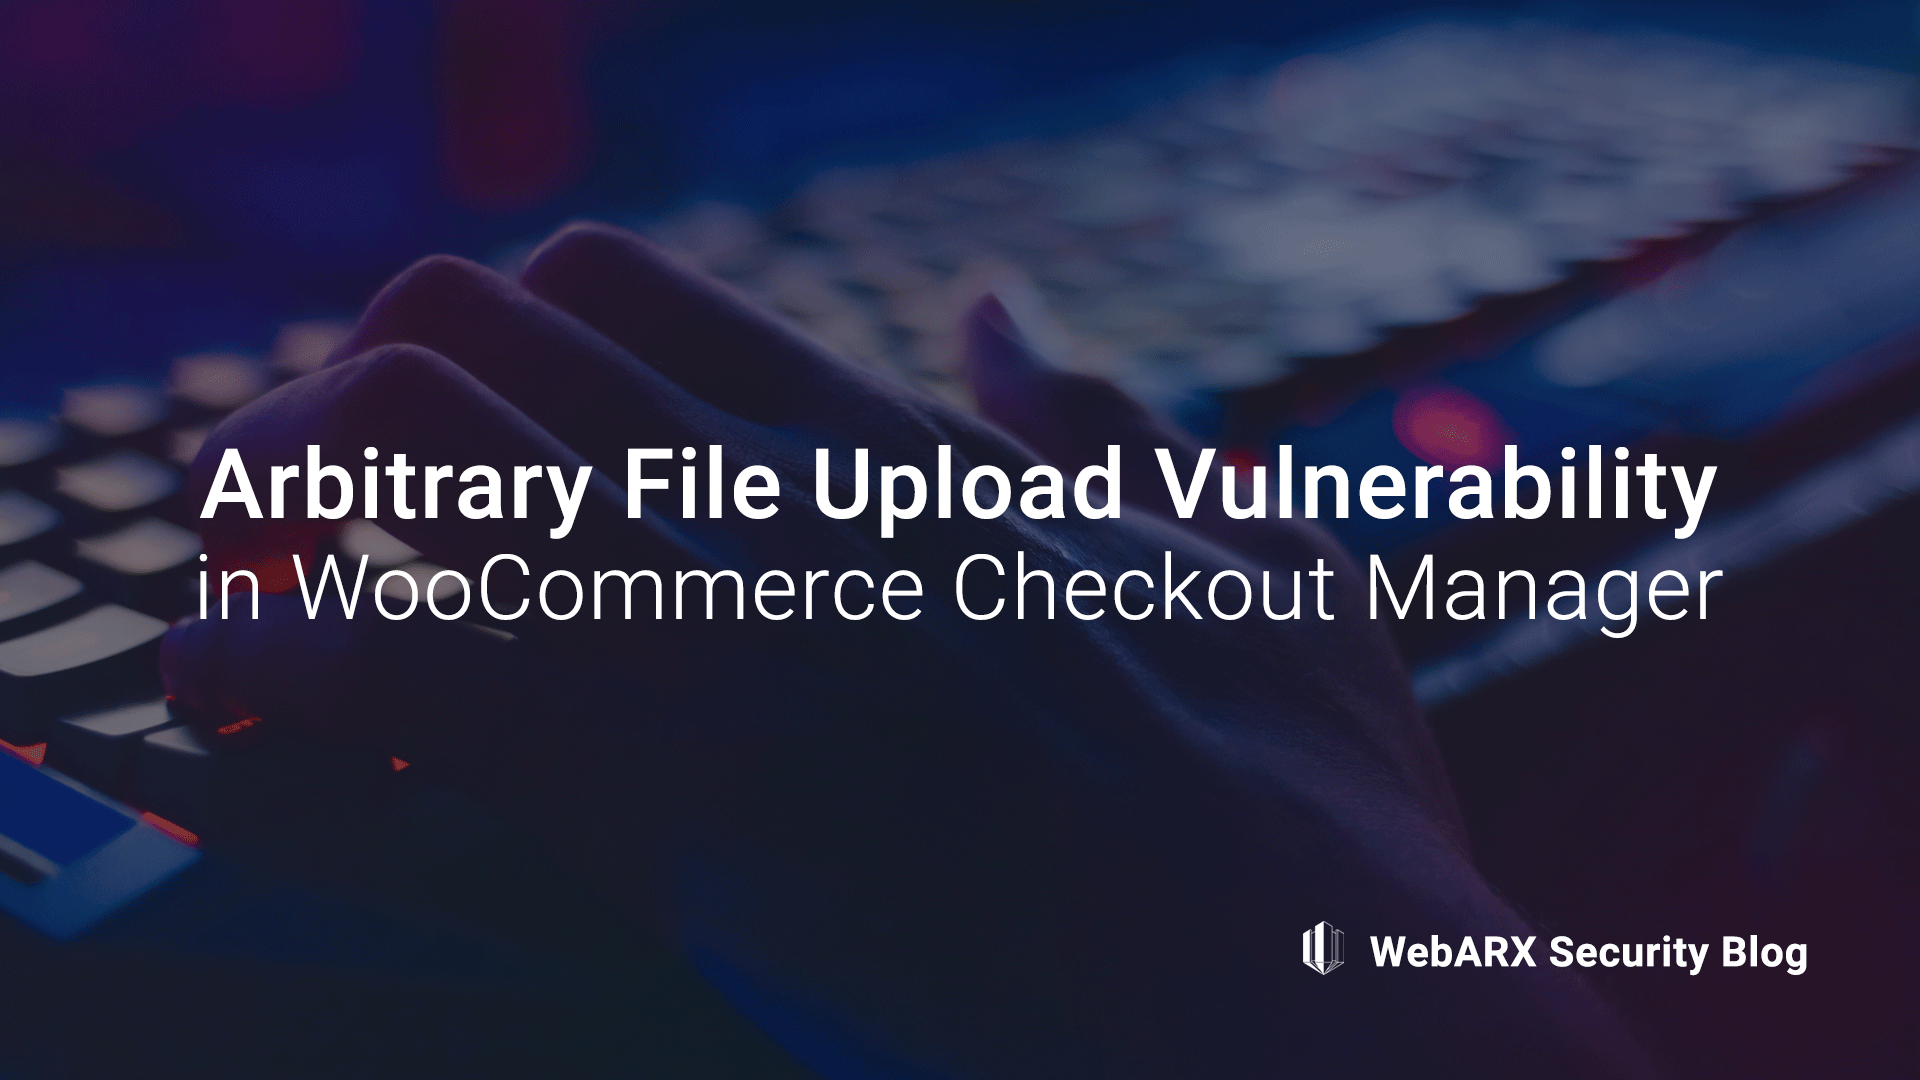 Arbitrary File Upload Vulnerability in WooCommerce Checkout Manager